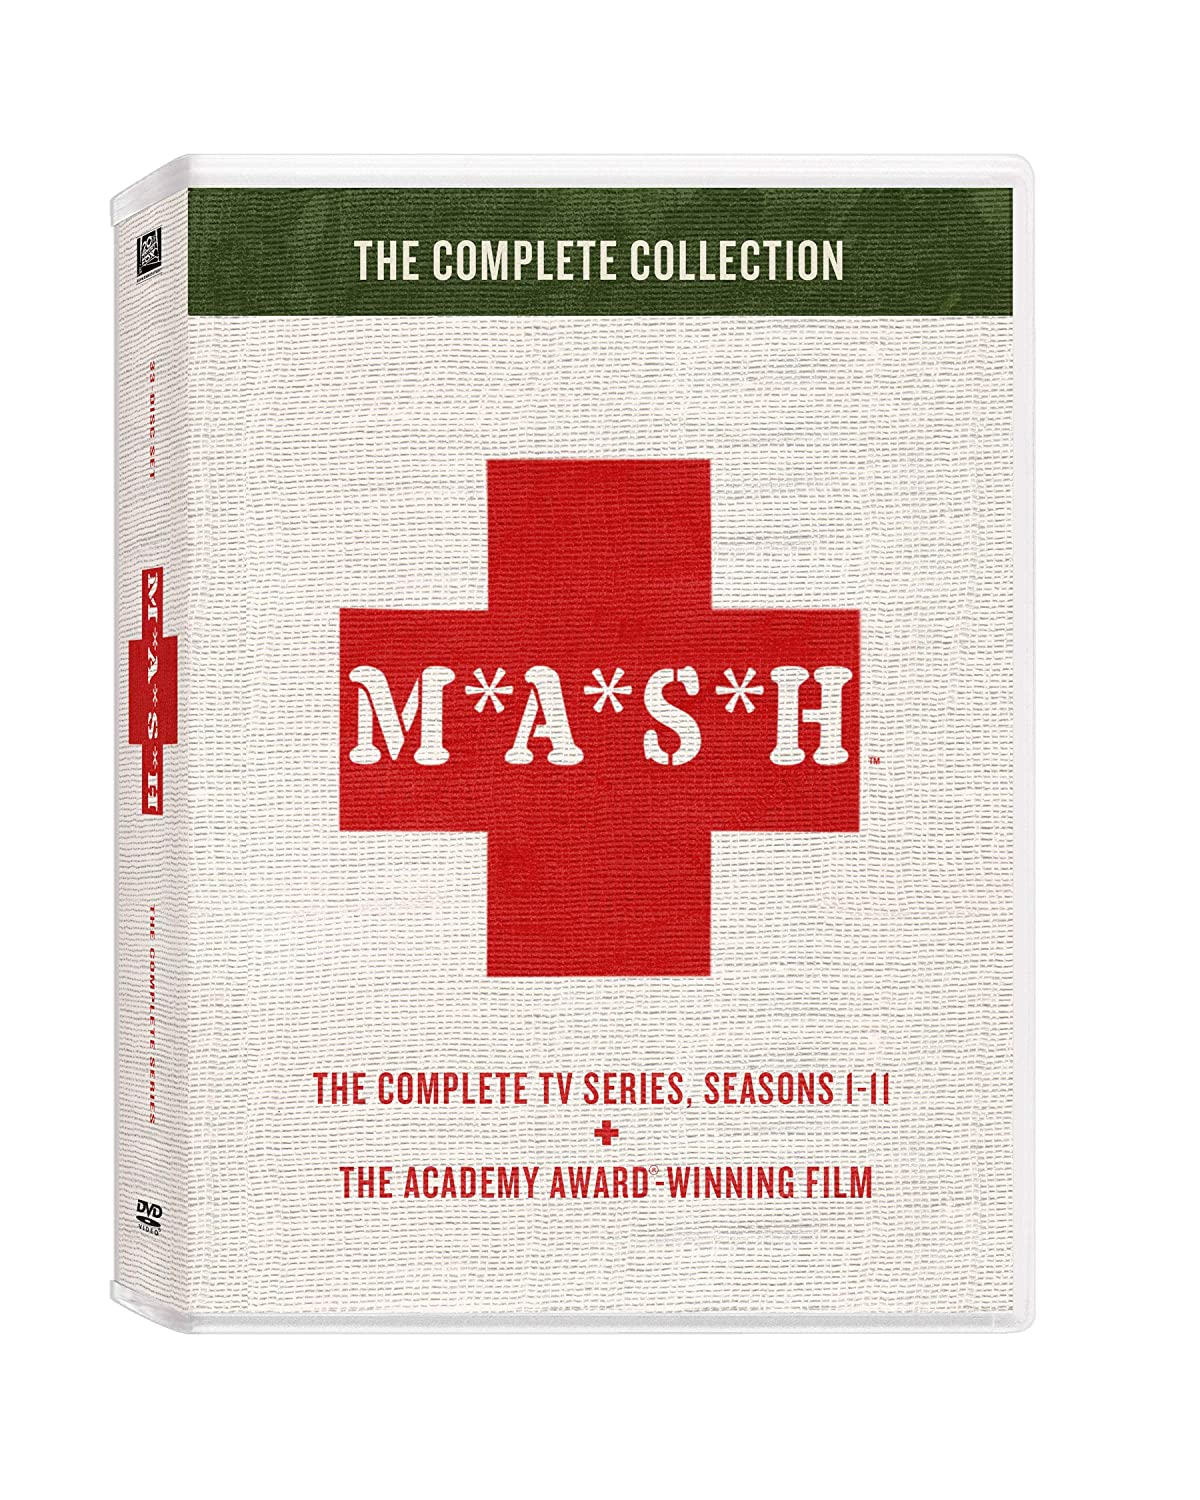 Mash DVD Martinis and Medicine Complete Series Box Set 20th Century Fox DVDs & Blu-ray Discs > DVDs > Box Sets